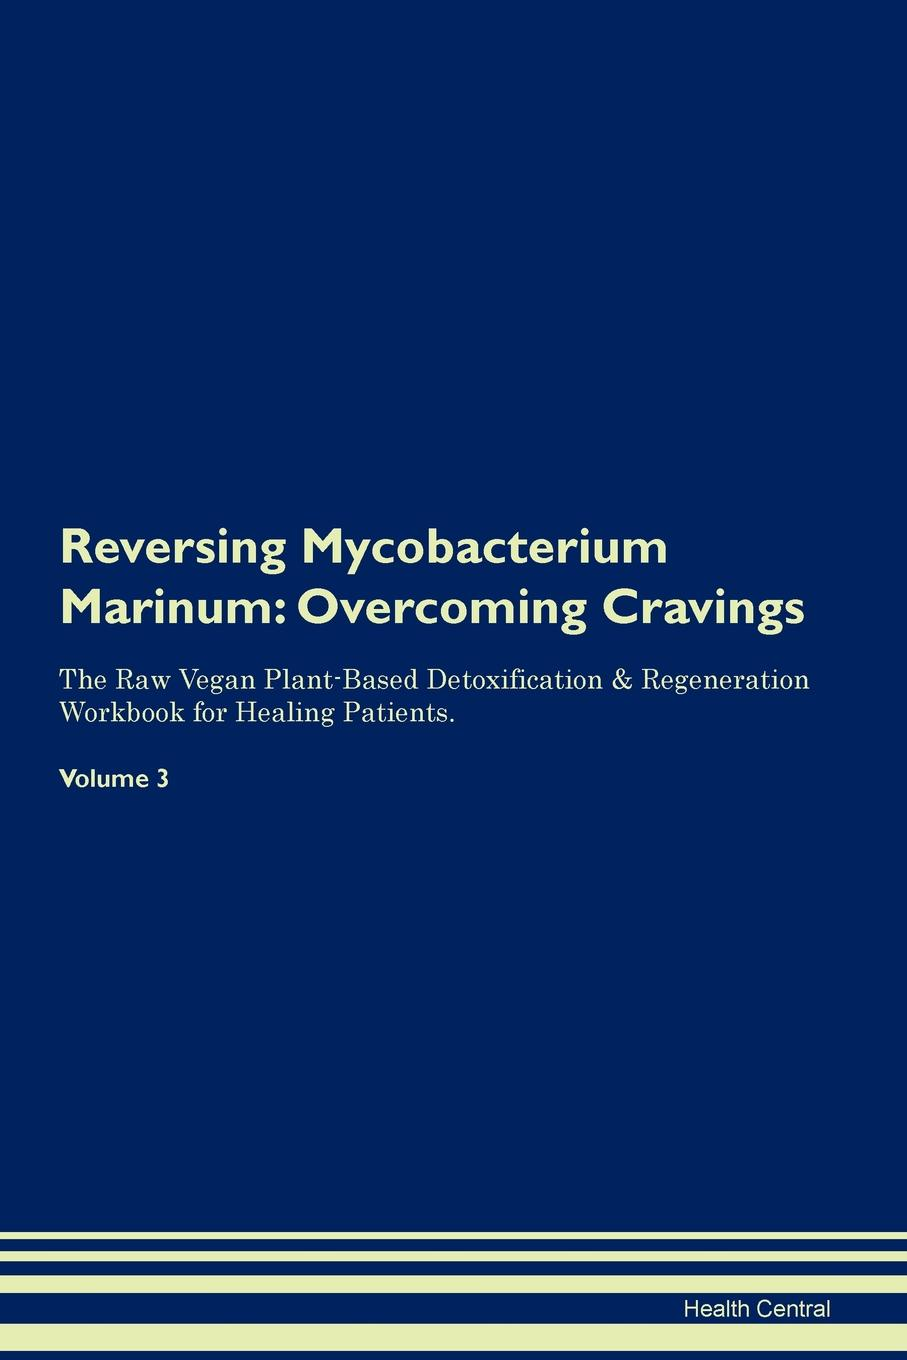 Health Central Reversing Mycobacterium Marinum. Overcoming Cravings The Raw Vegan Plant-Based Detoxification . Regeneration Workbook for Healing Patients. Volume 3 mycobacterium abscessus